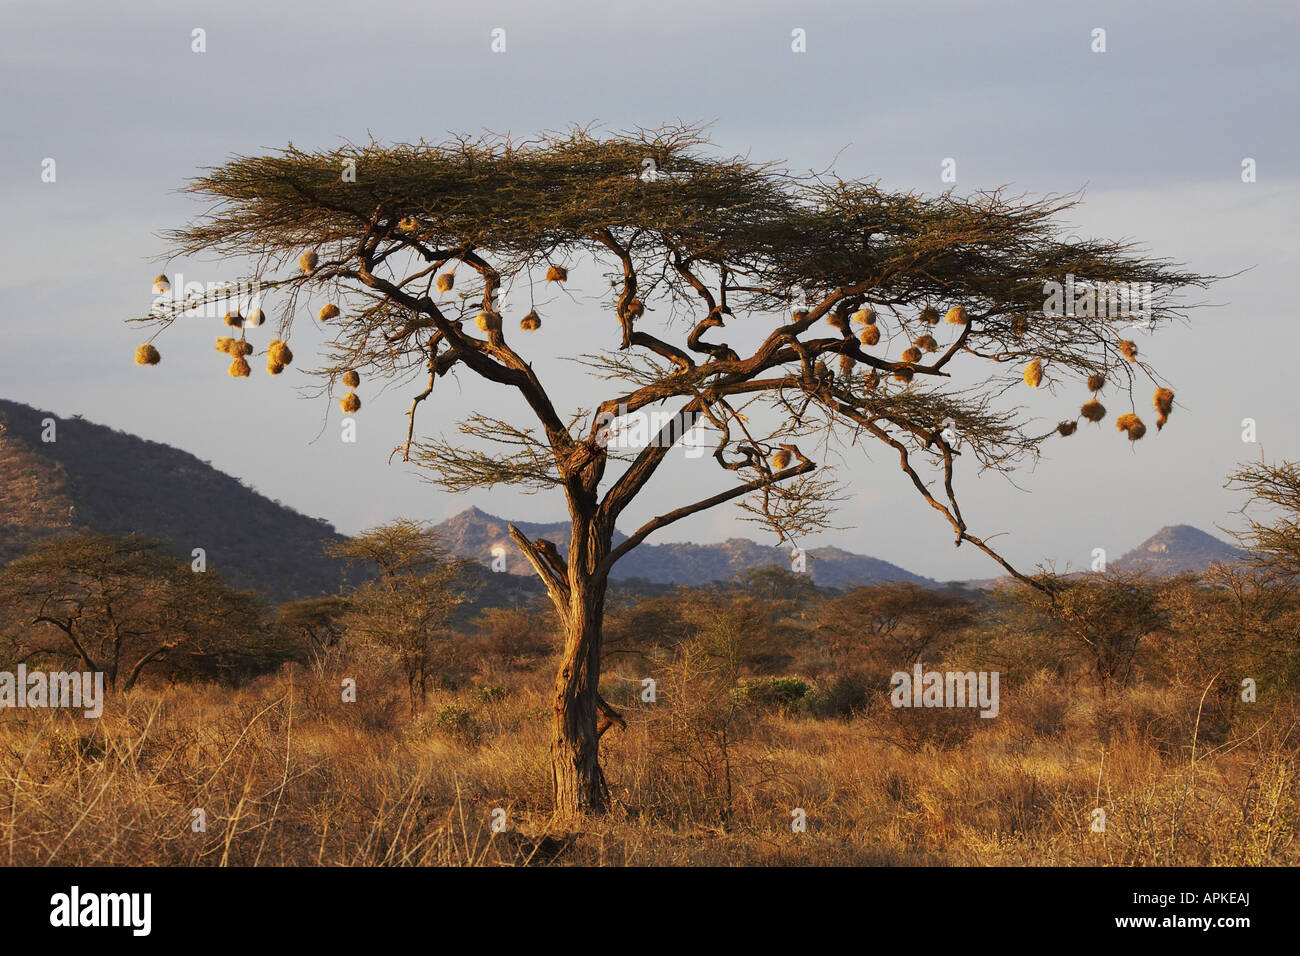 Umbrella Thorn Acacia Umbrella Acacia Acacia Tortilis Tree With